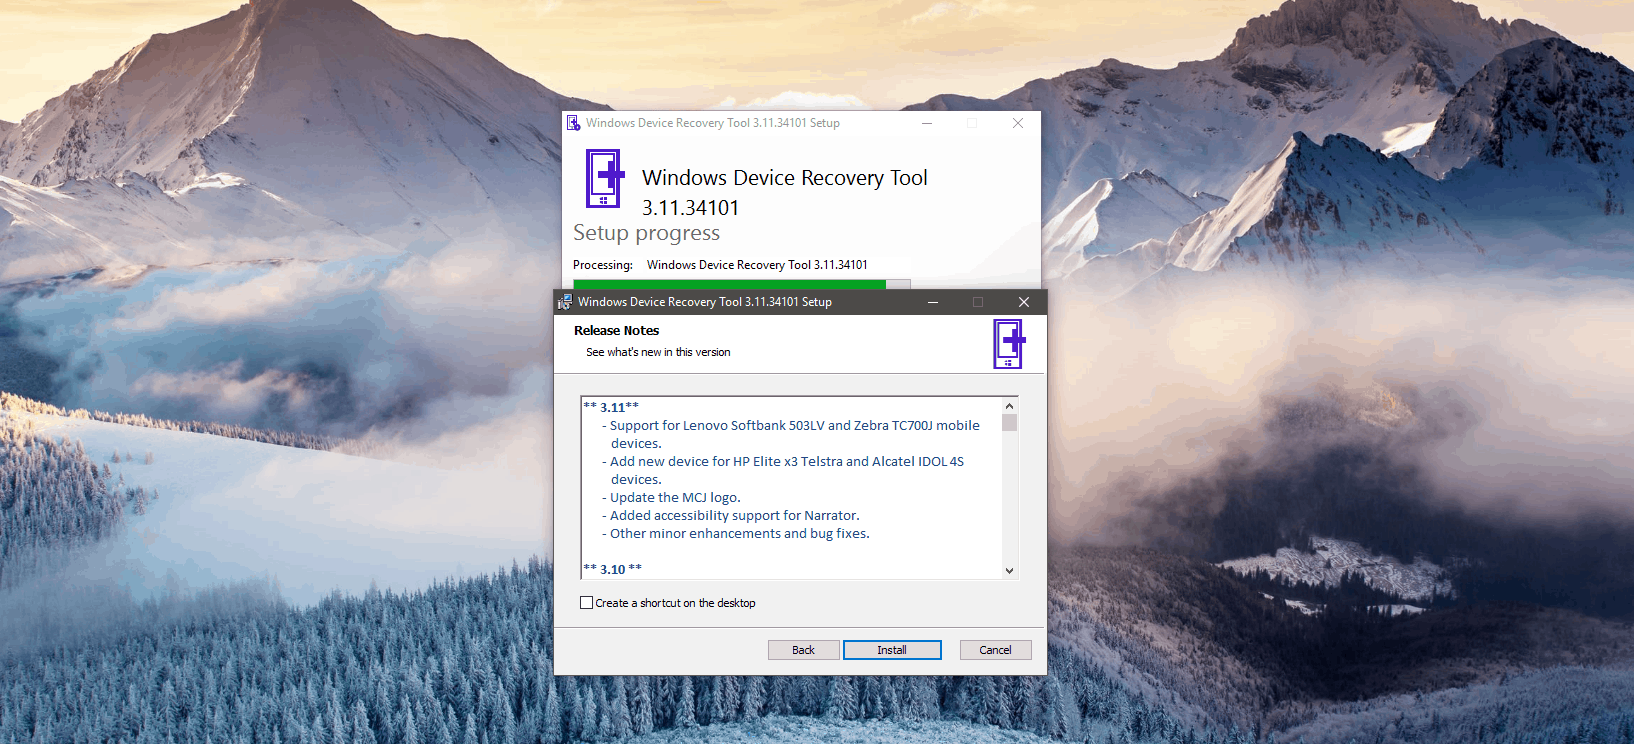 Windows device recovery tool delivers a mandatory update - onmsft. Com - december 12, 2016